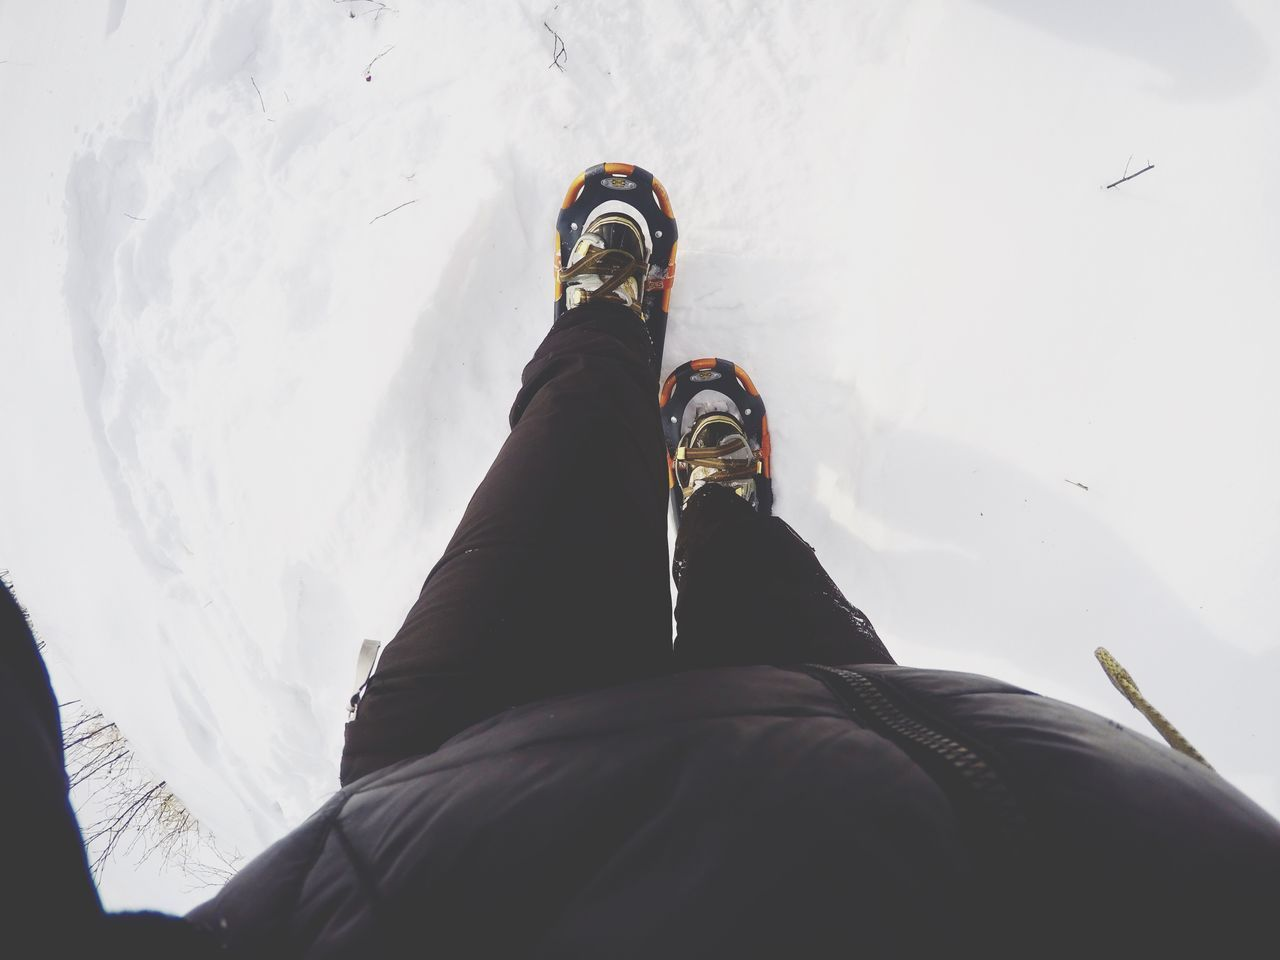 Low Section Of Person Hiking On Snow